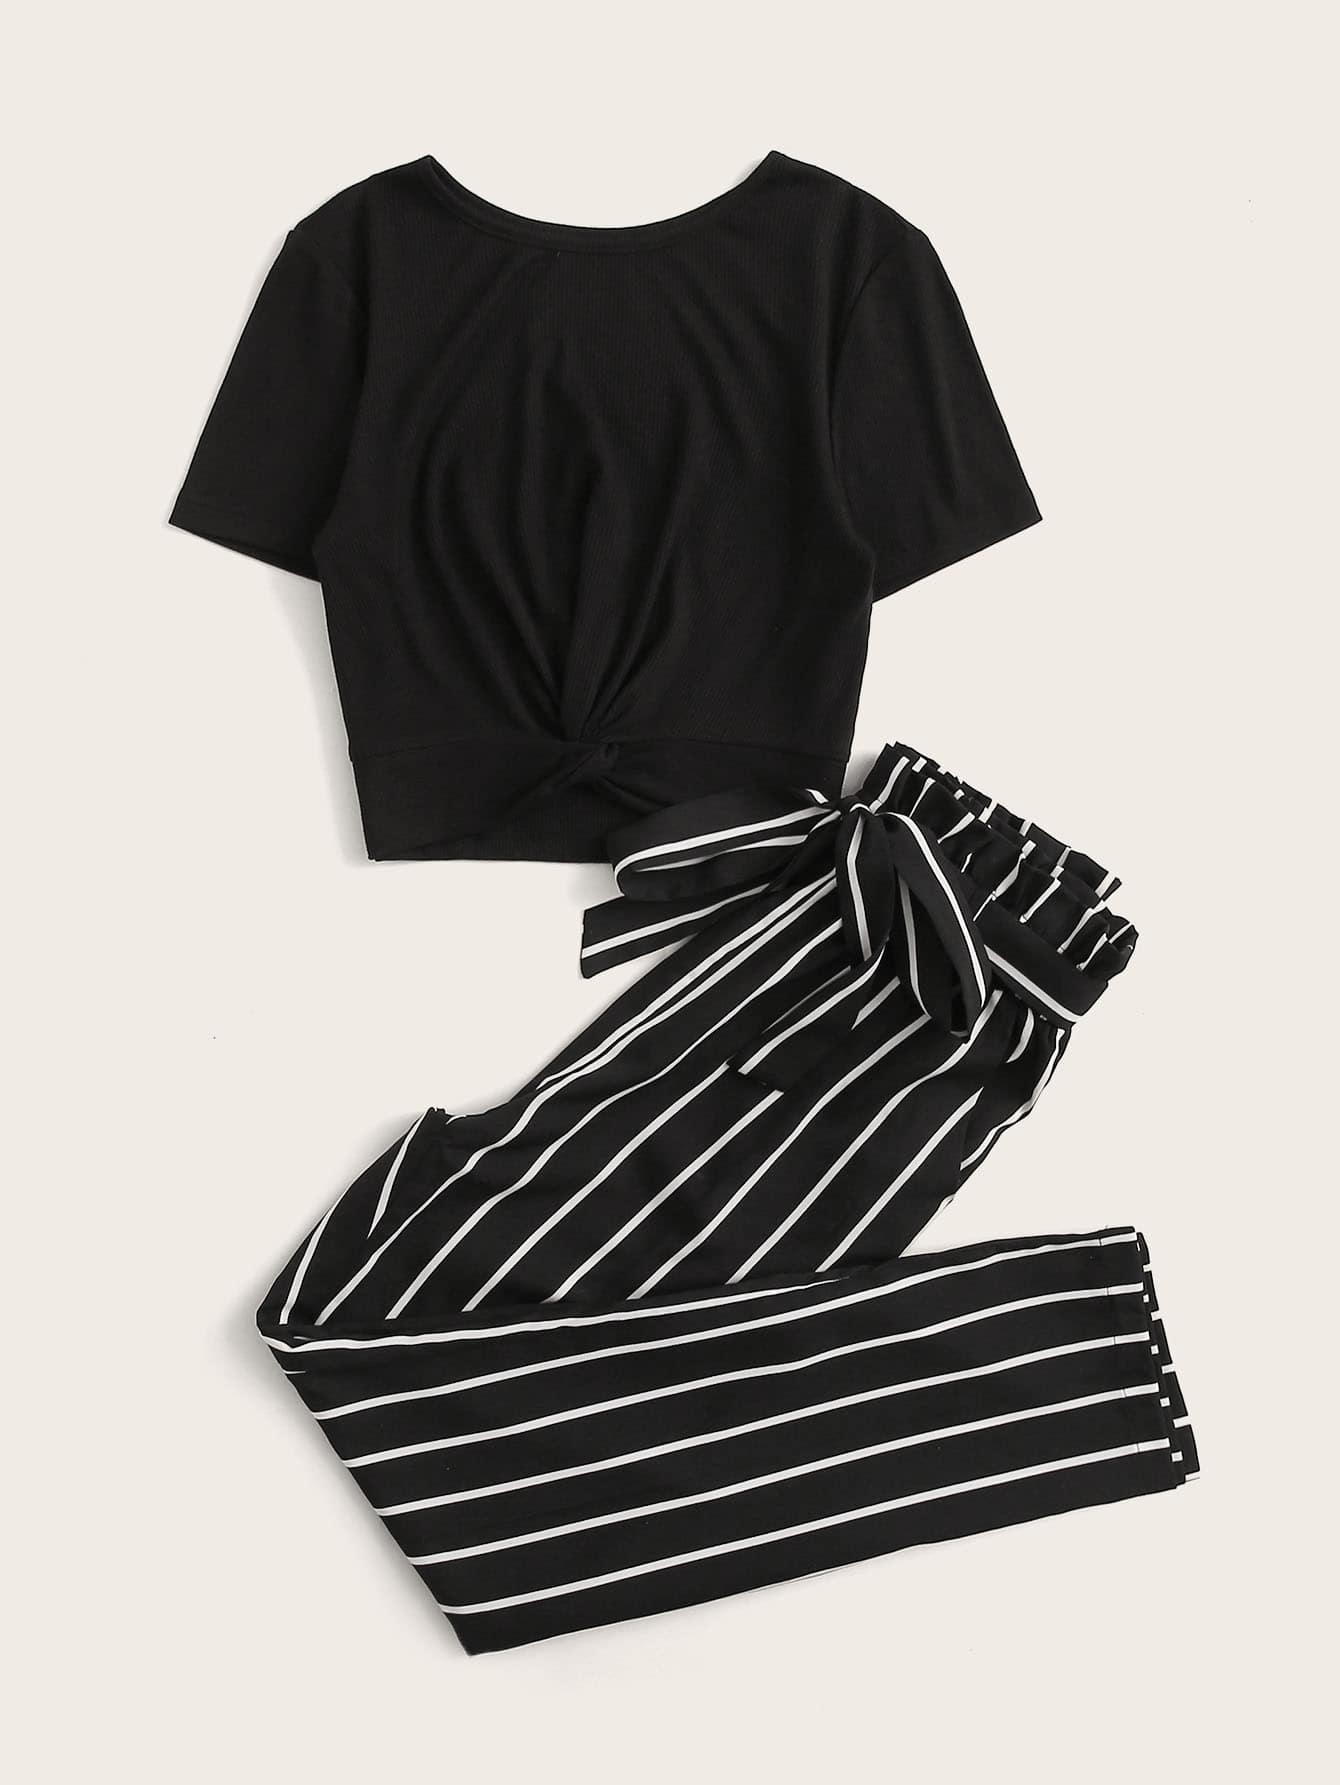 Twist Front Solid Top & Striped Belted Pants Set - FLJ CORPORATIONS